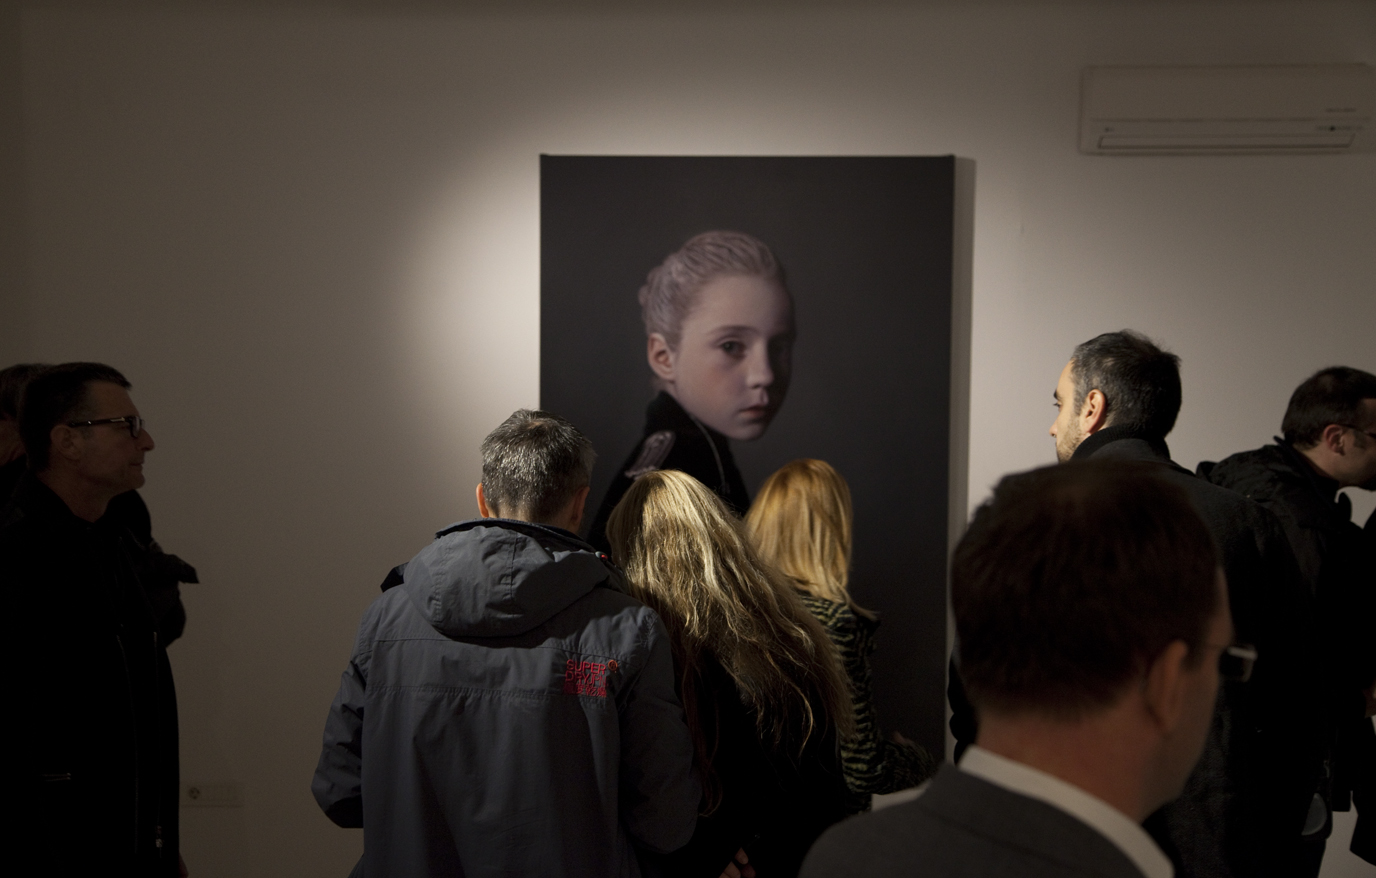 Gottfried Helnwein Solo Exhibition at the Museum of Contemporary Art Belgrade